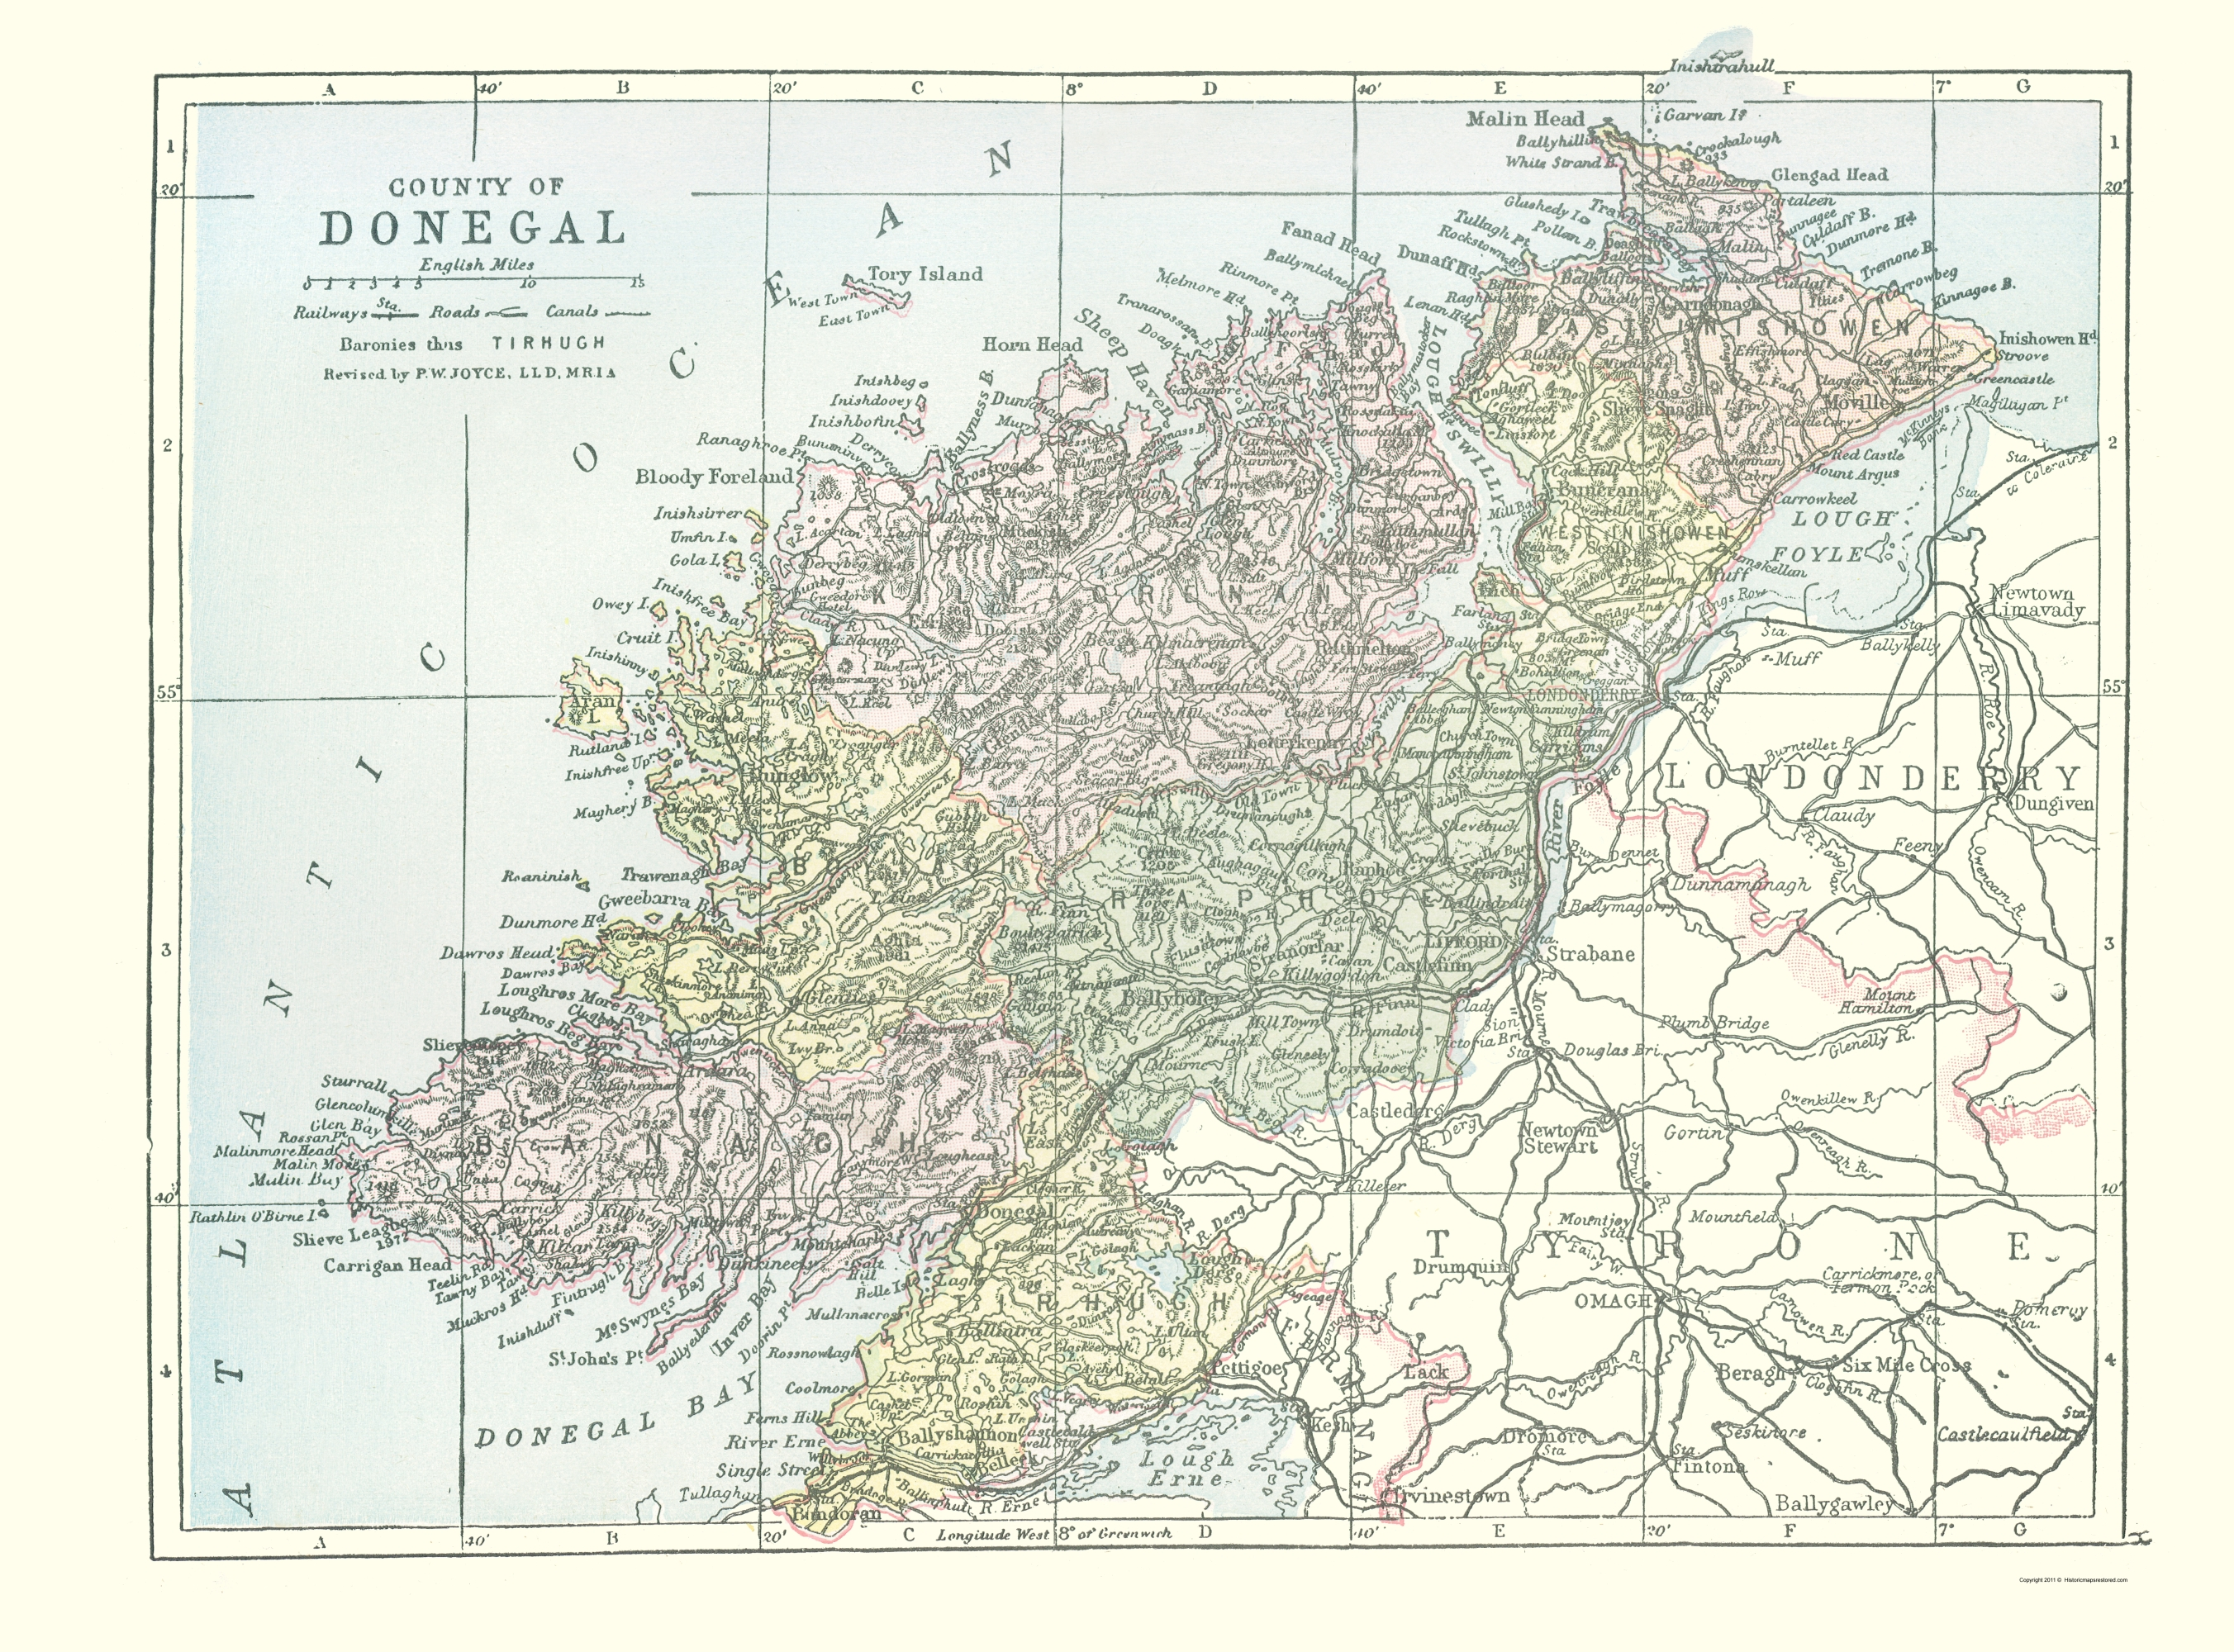 Donegal Map Of Ireland.Old Ireland Map Donegal County Philip 1882 23 X 31 10 Walmart